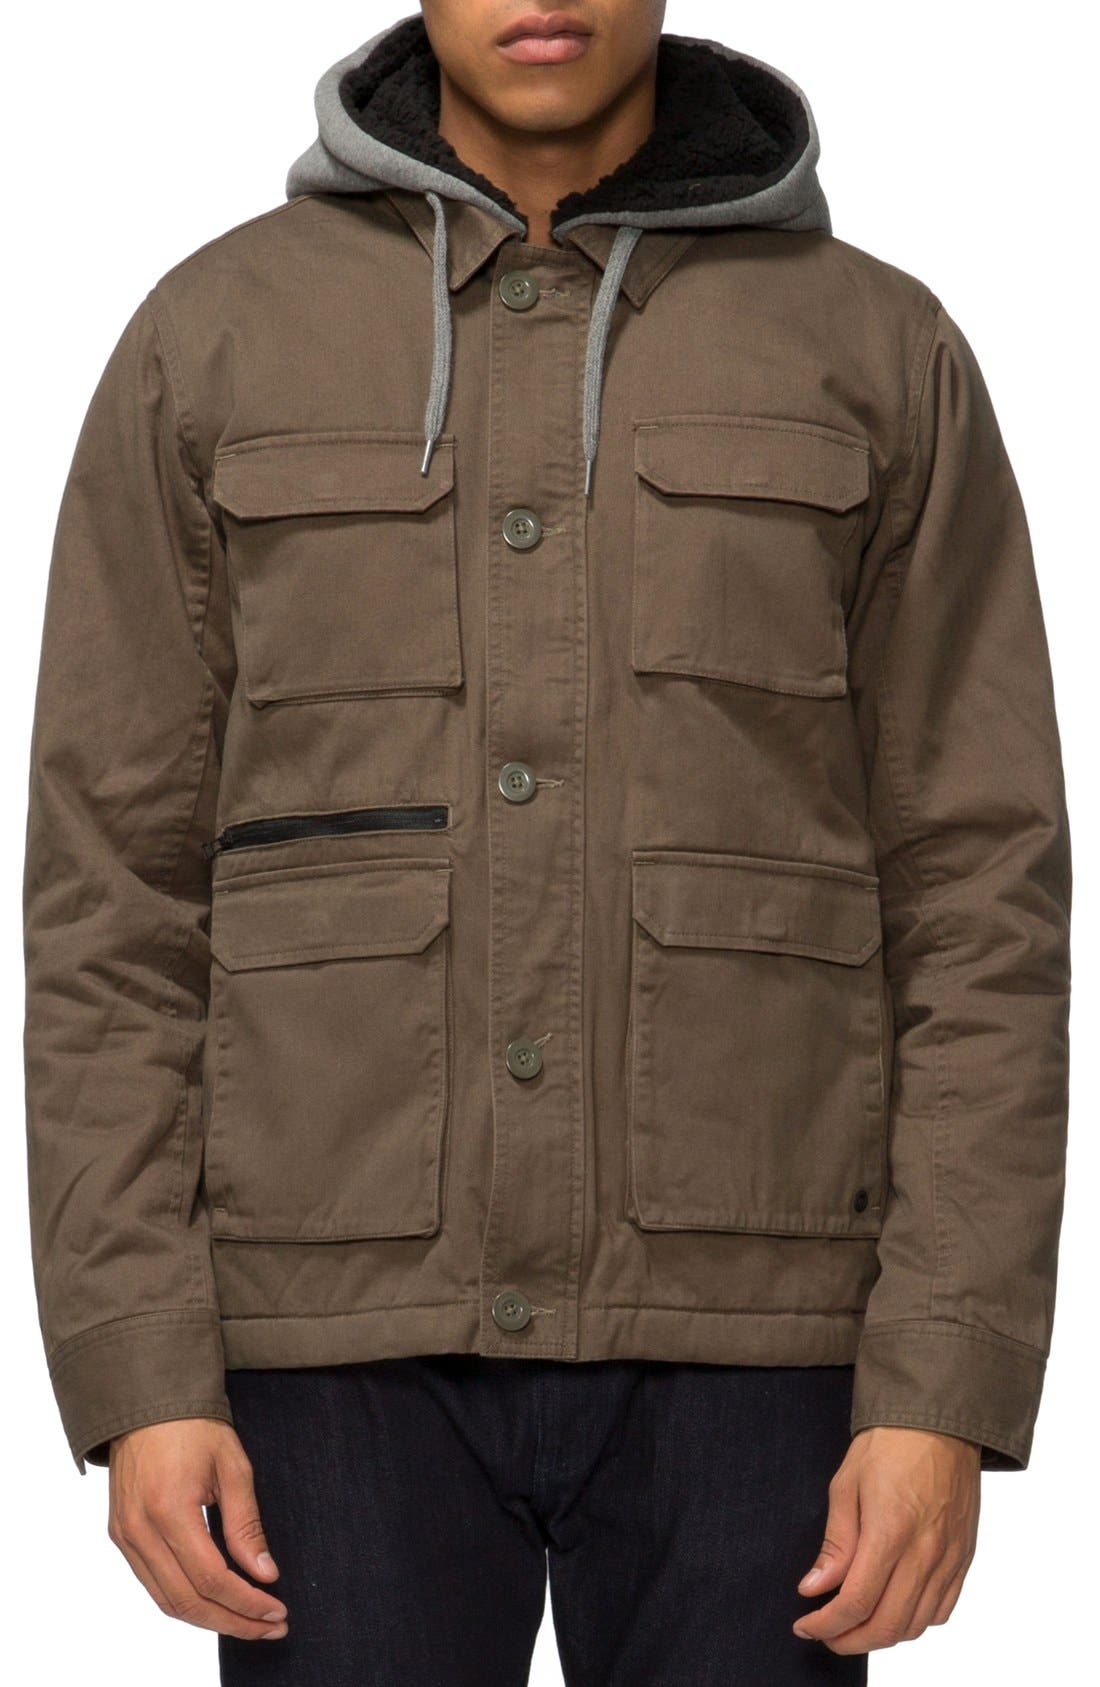 Droogs Plus Field Jacket with Detachable Hood,                         Main,                         color, Olive/ Heather Grey